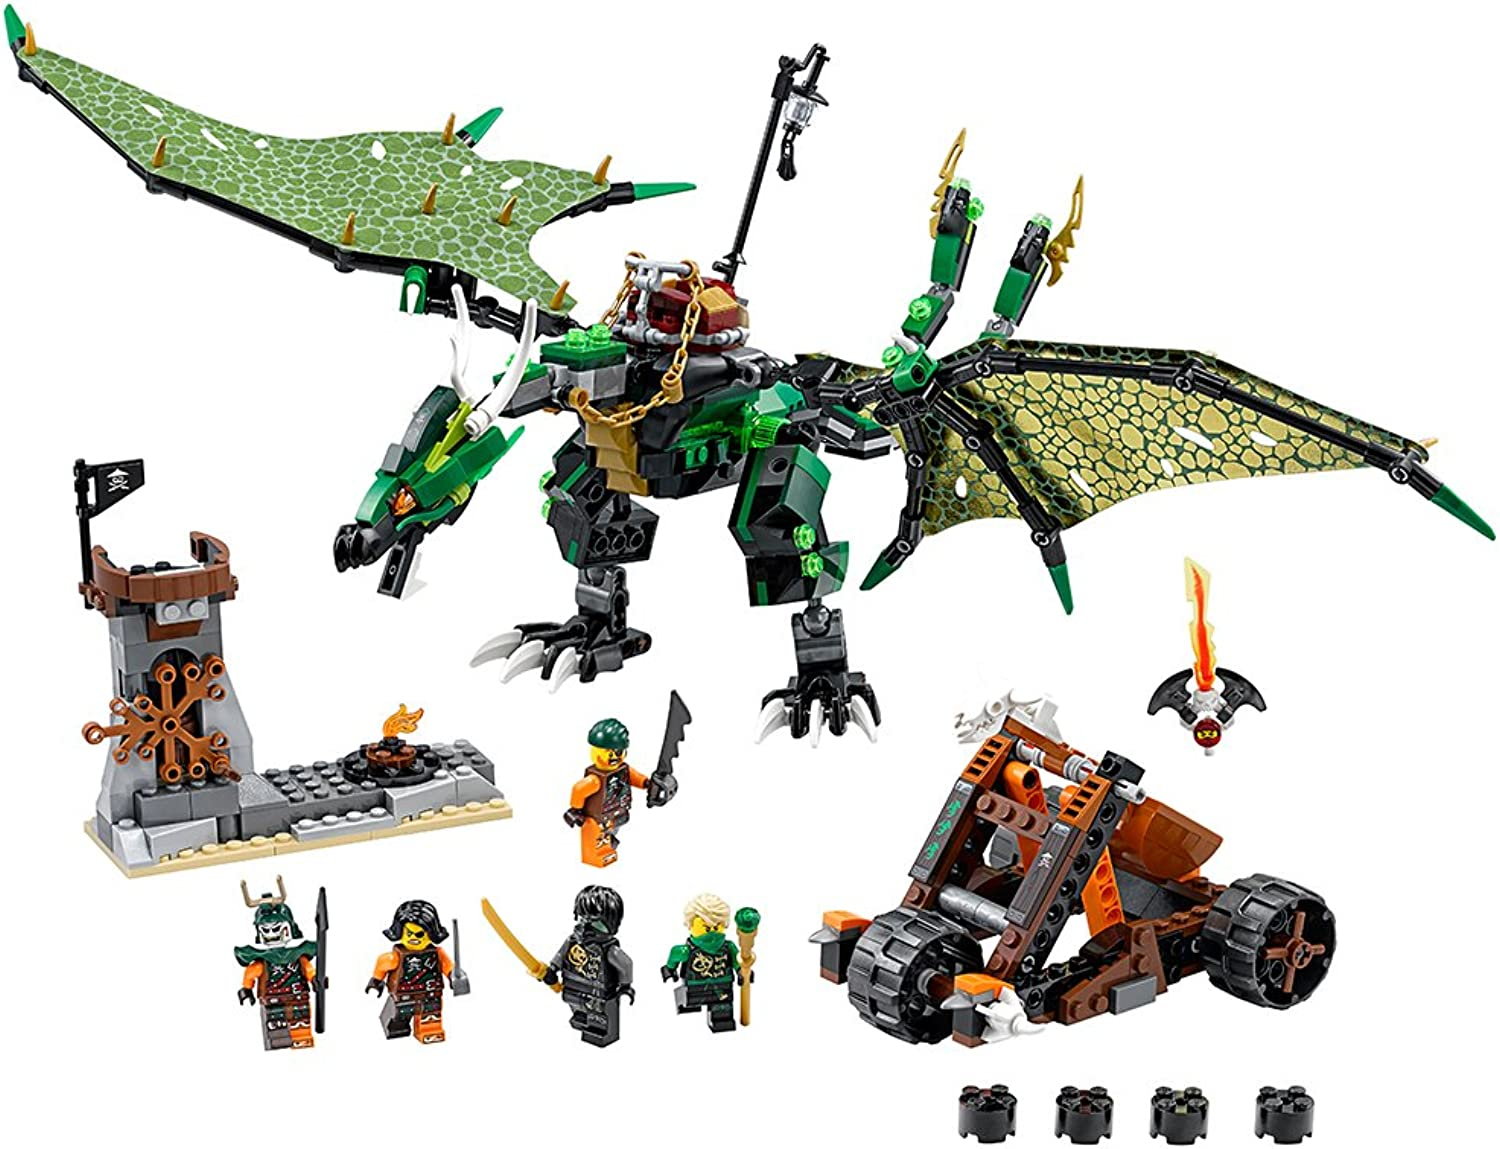 LEGO Ninjago 70593 The Grün NRG Dragon Building Kit (567 Piece) by LEGO